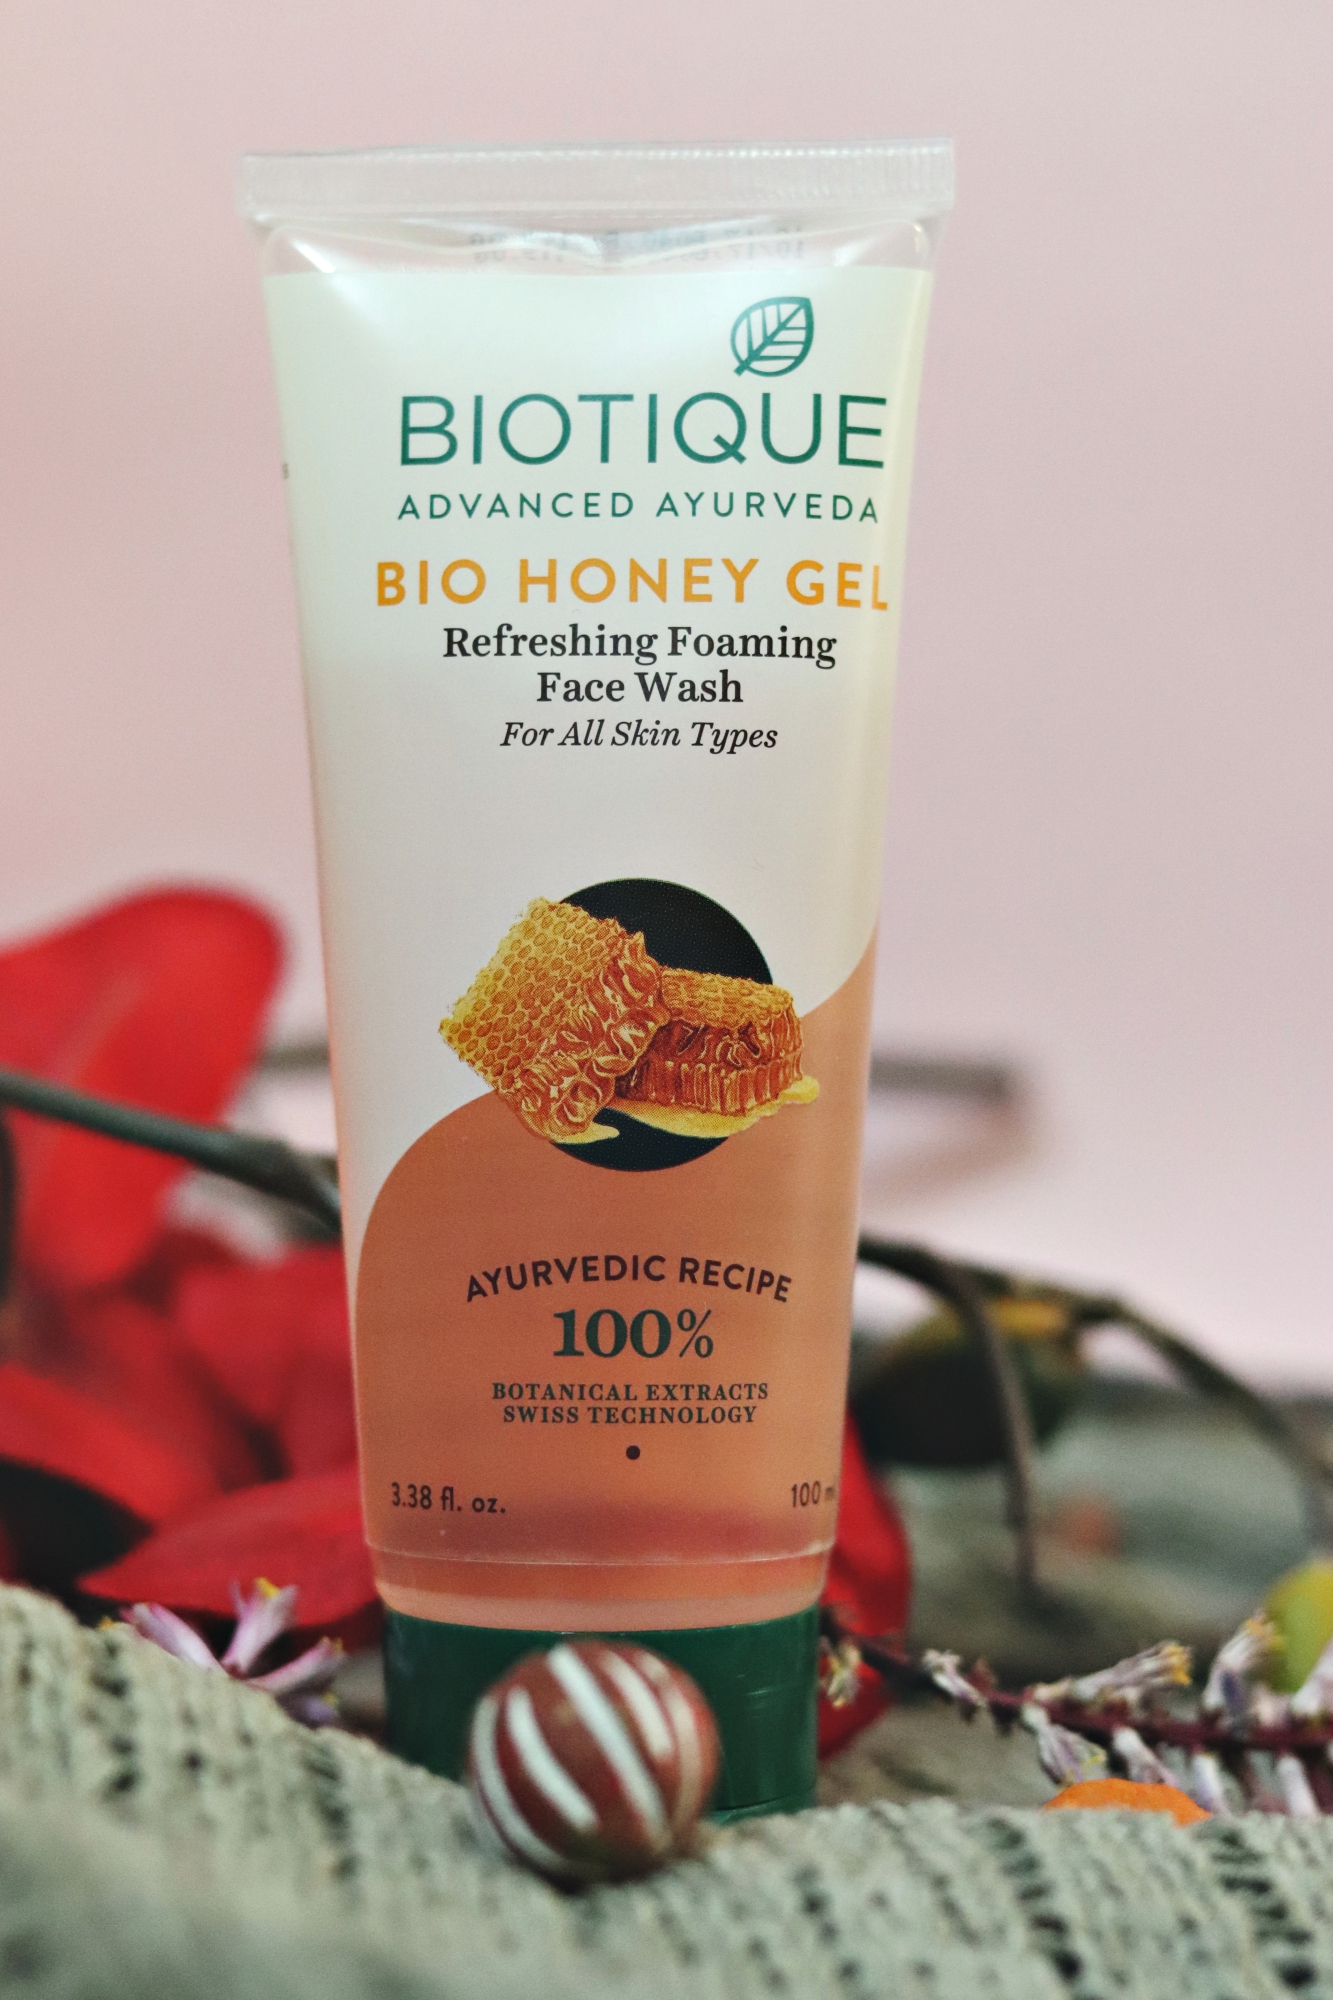 Biotique Winter care, bio honey gel, beauty blogger